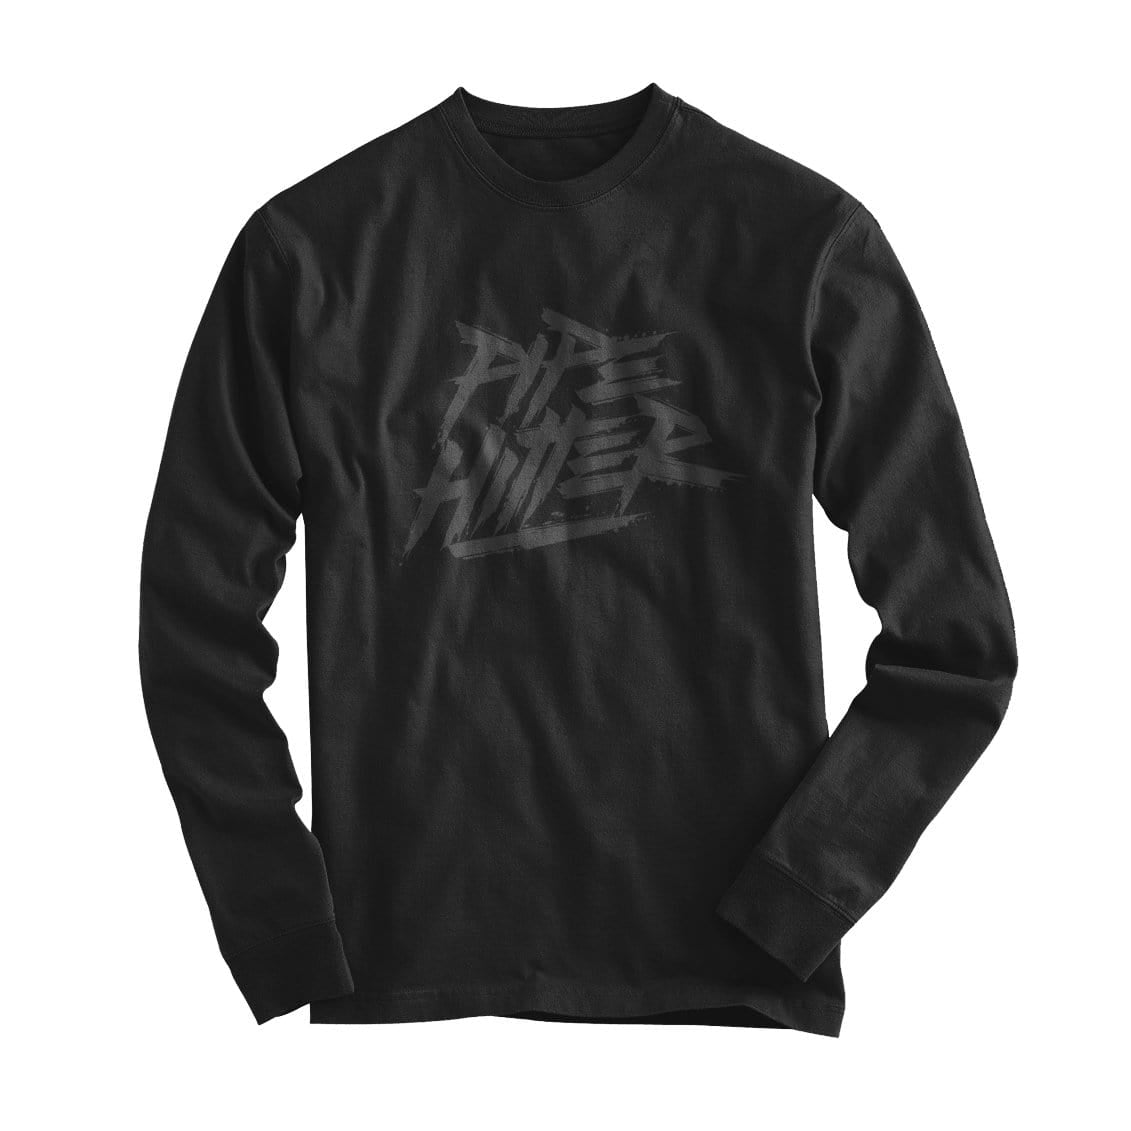 Pipe Hitter - Long Sleeve - Black/Grey - T-Shirts - Pipe Hitters Union